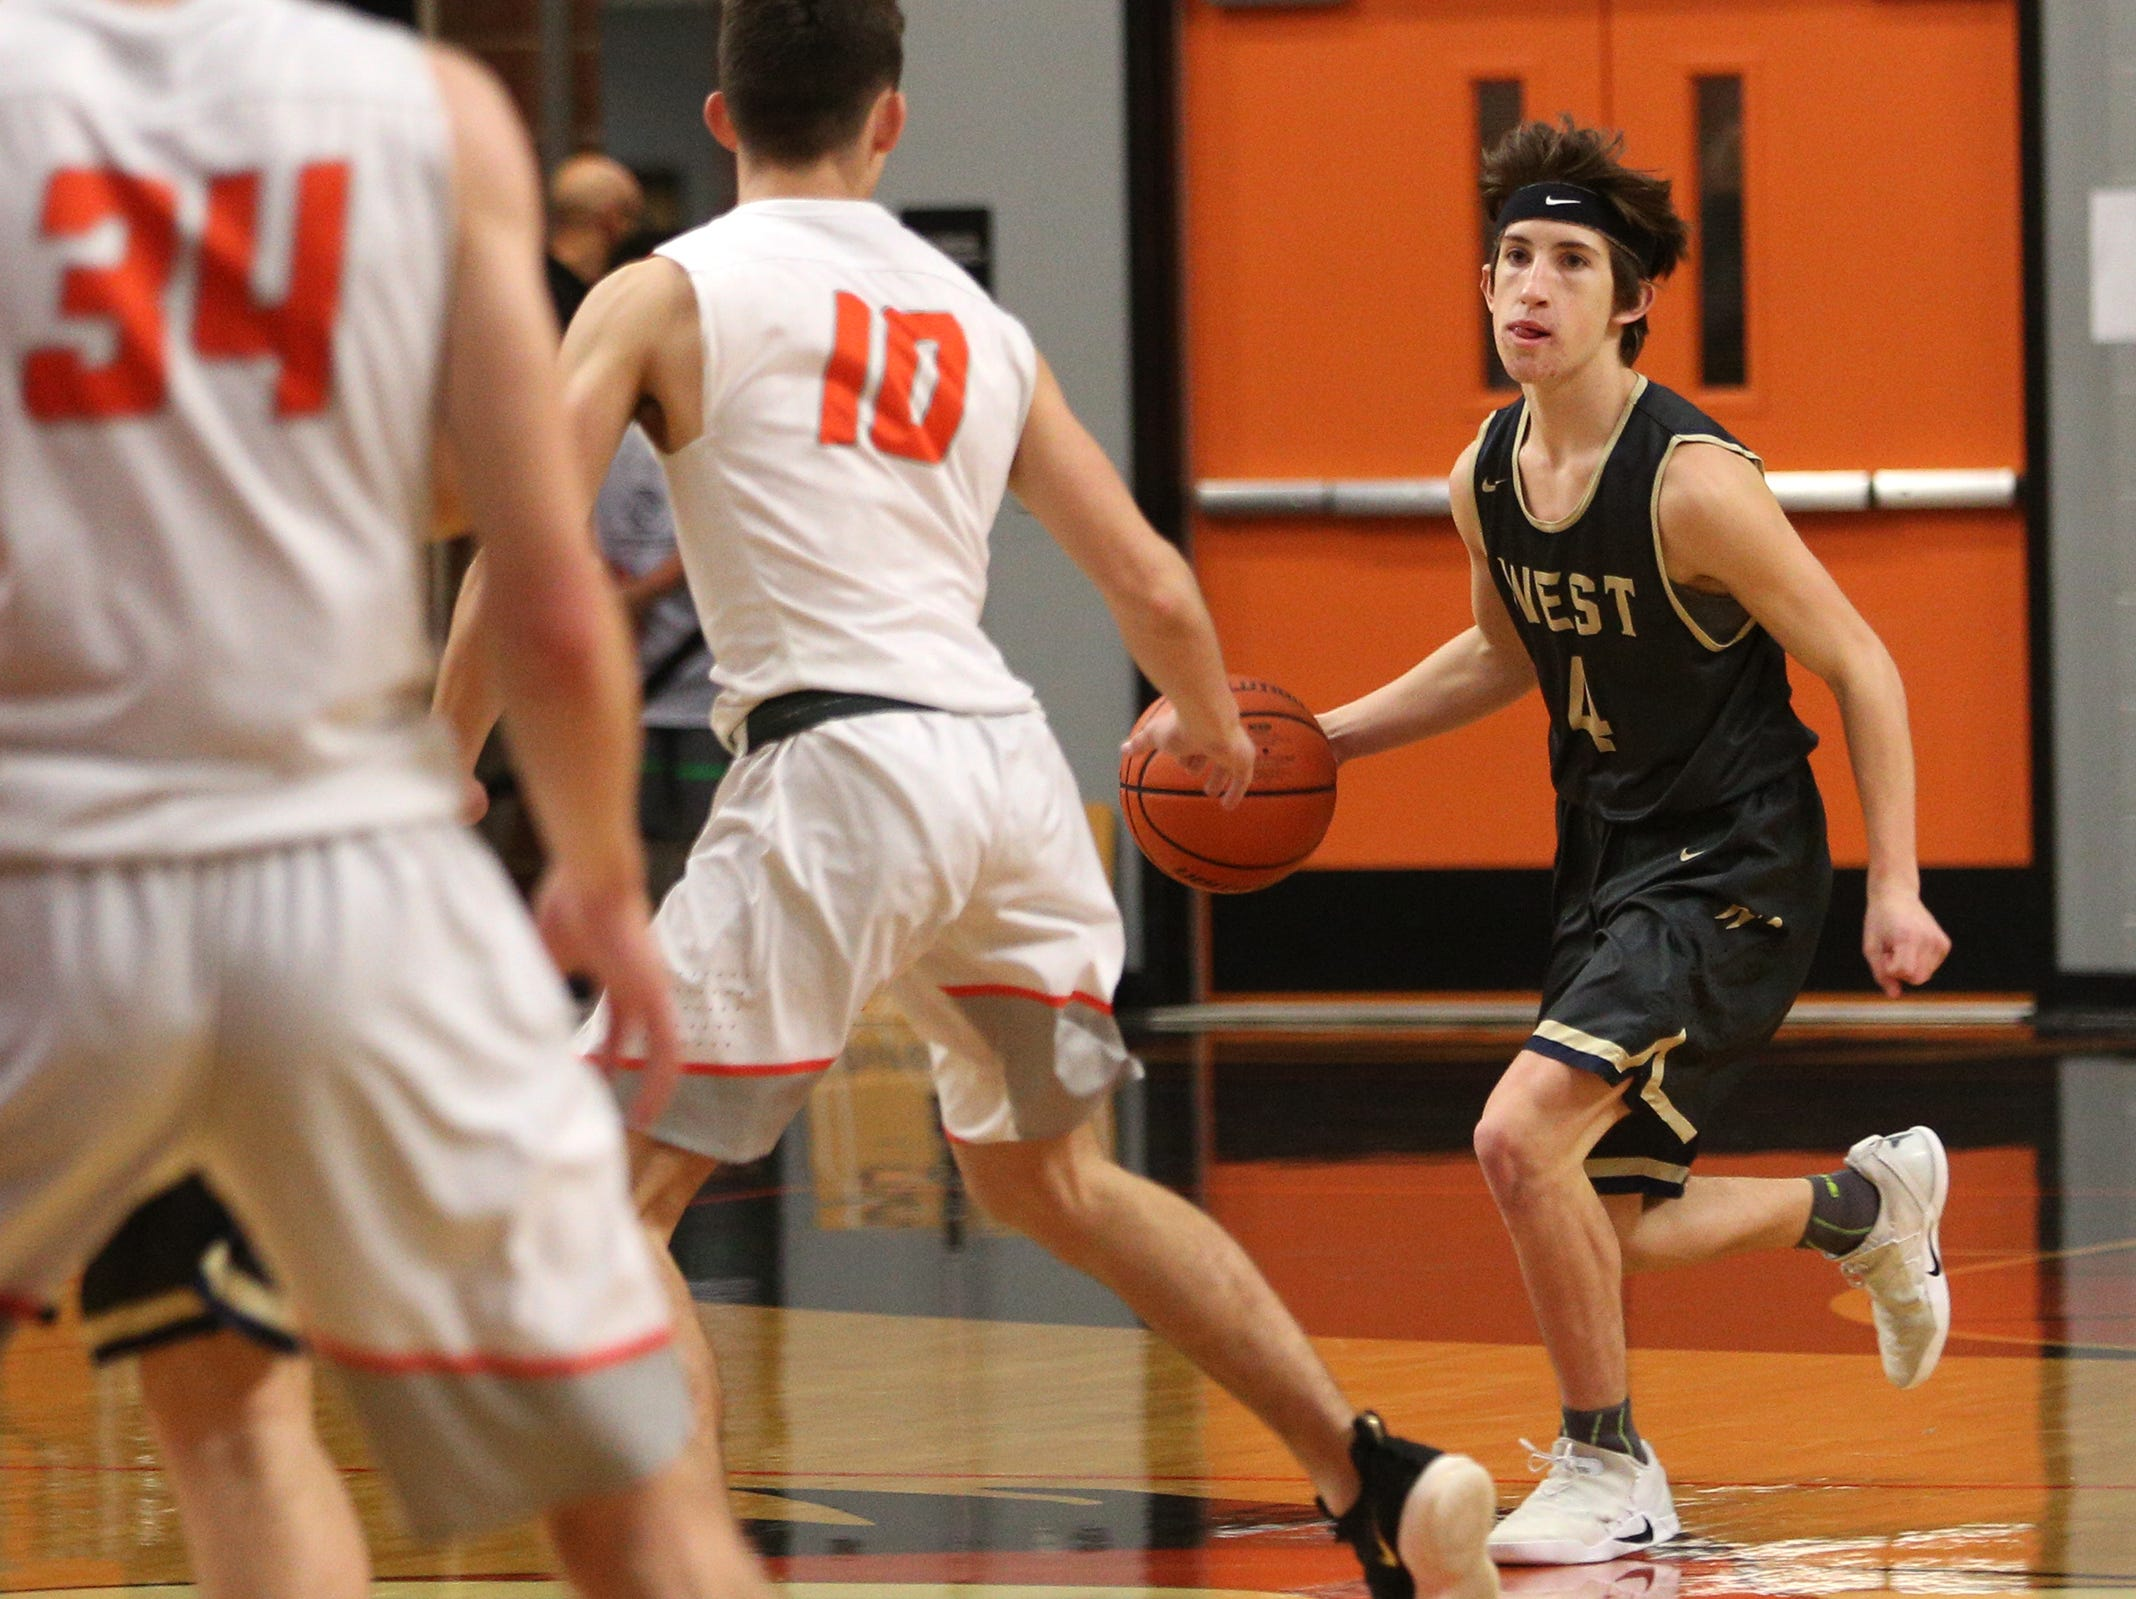 West Albany's Tanner Madsen (4) during the West Albany vs. Silverton High School boys basketball game in Silverton on Friday, Jan. 25, 2019.